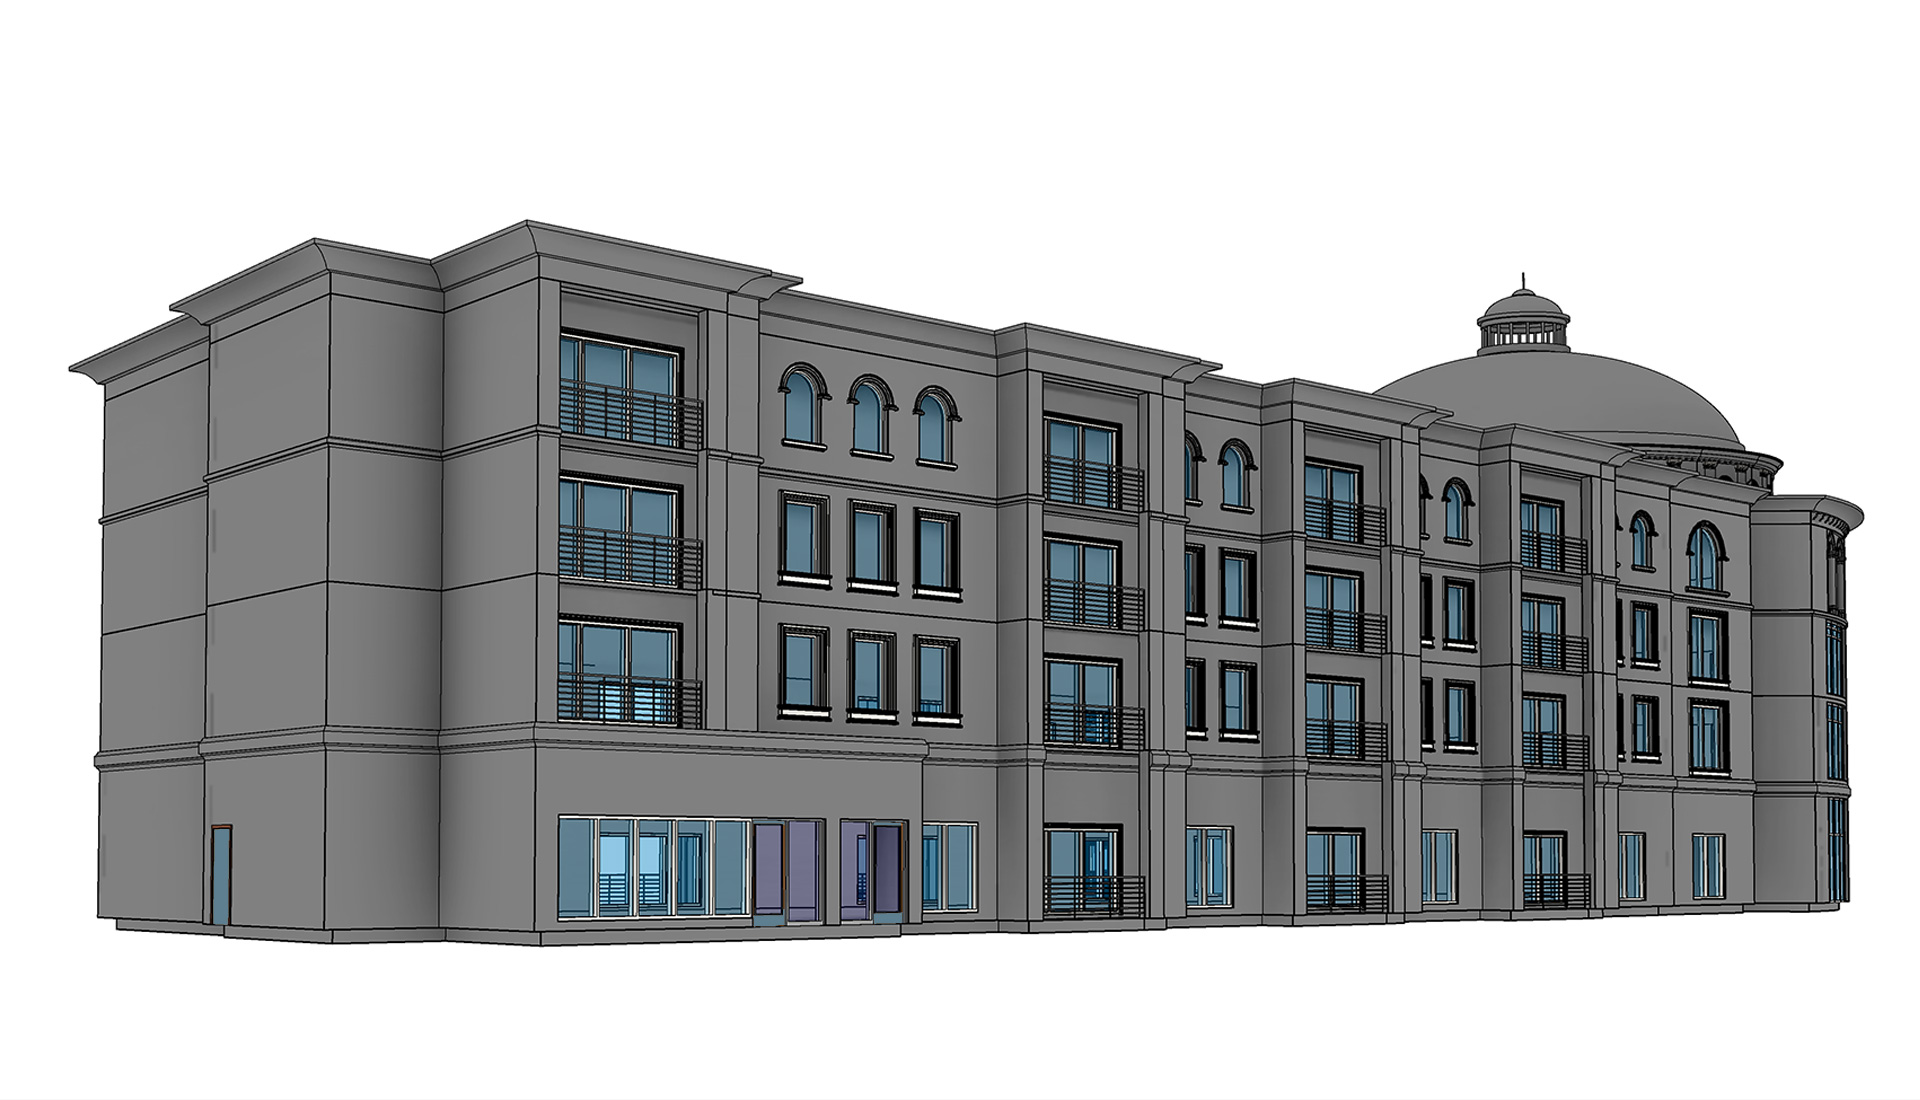 3D-architectural-model-of-hotel-building-project-Revit-Modeling-by-United-BIM